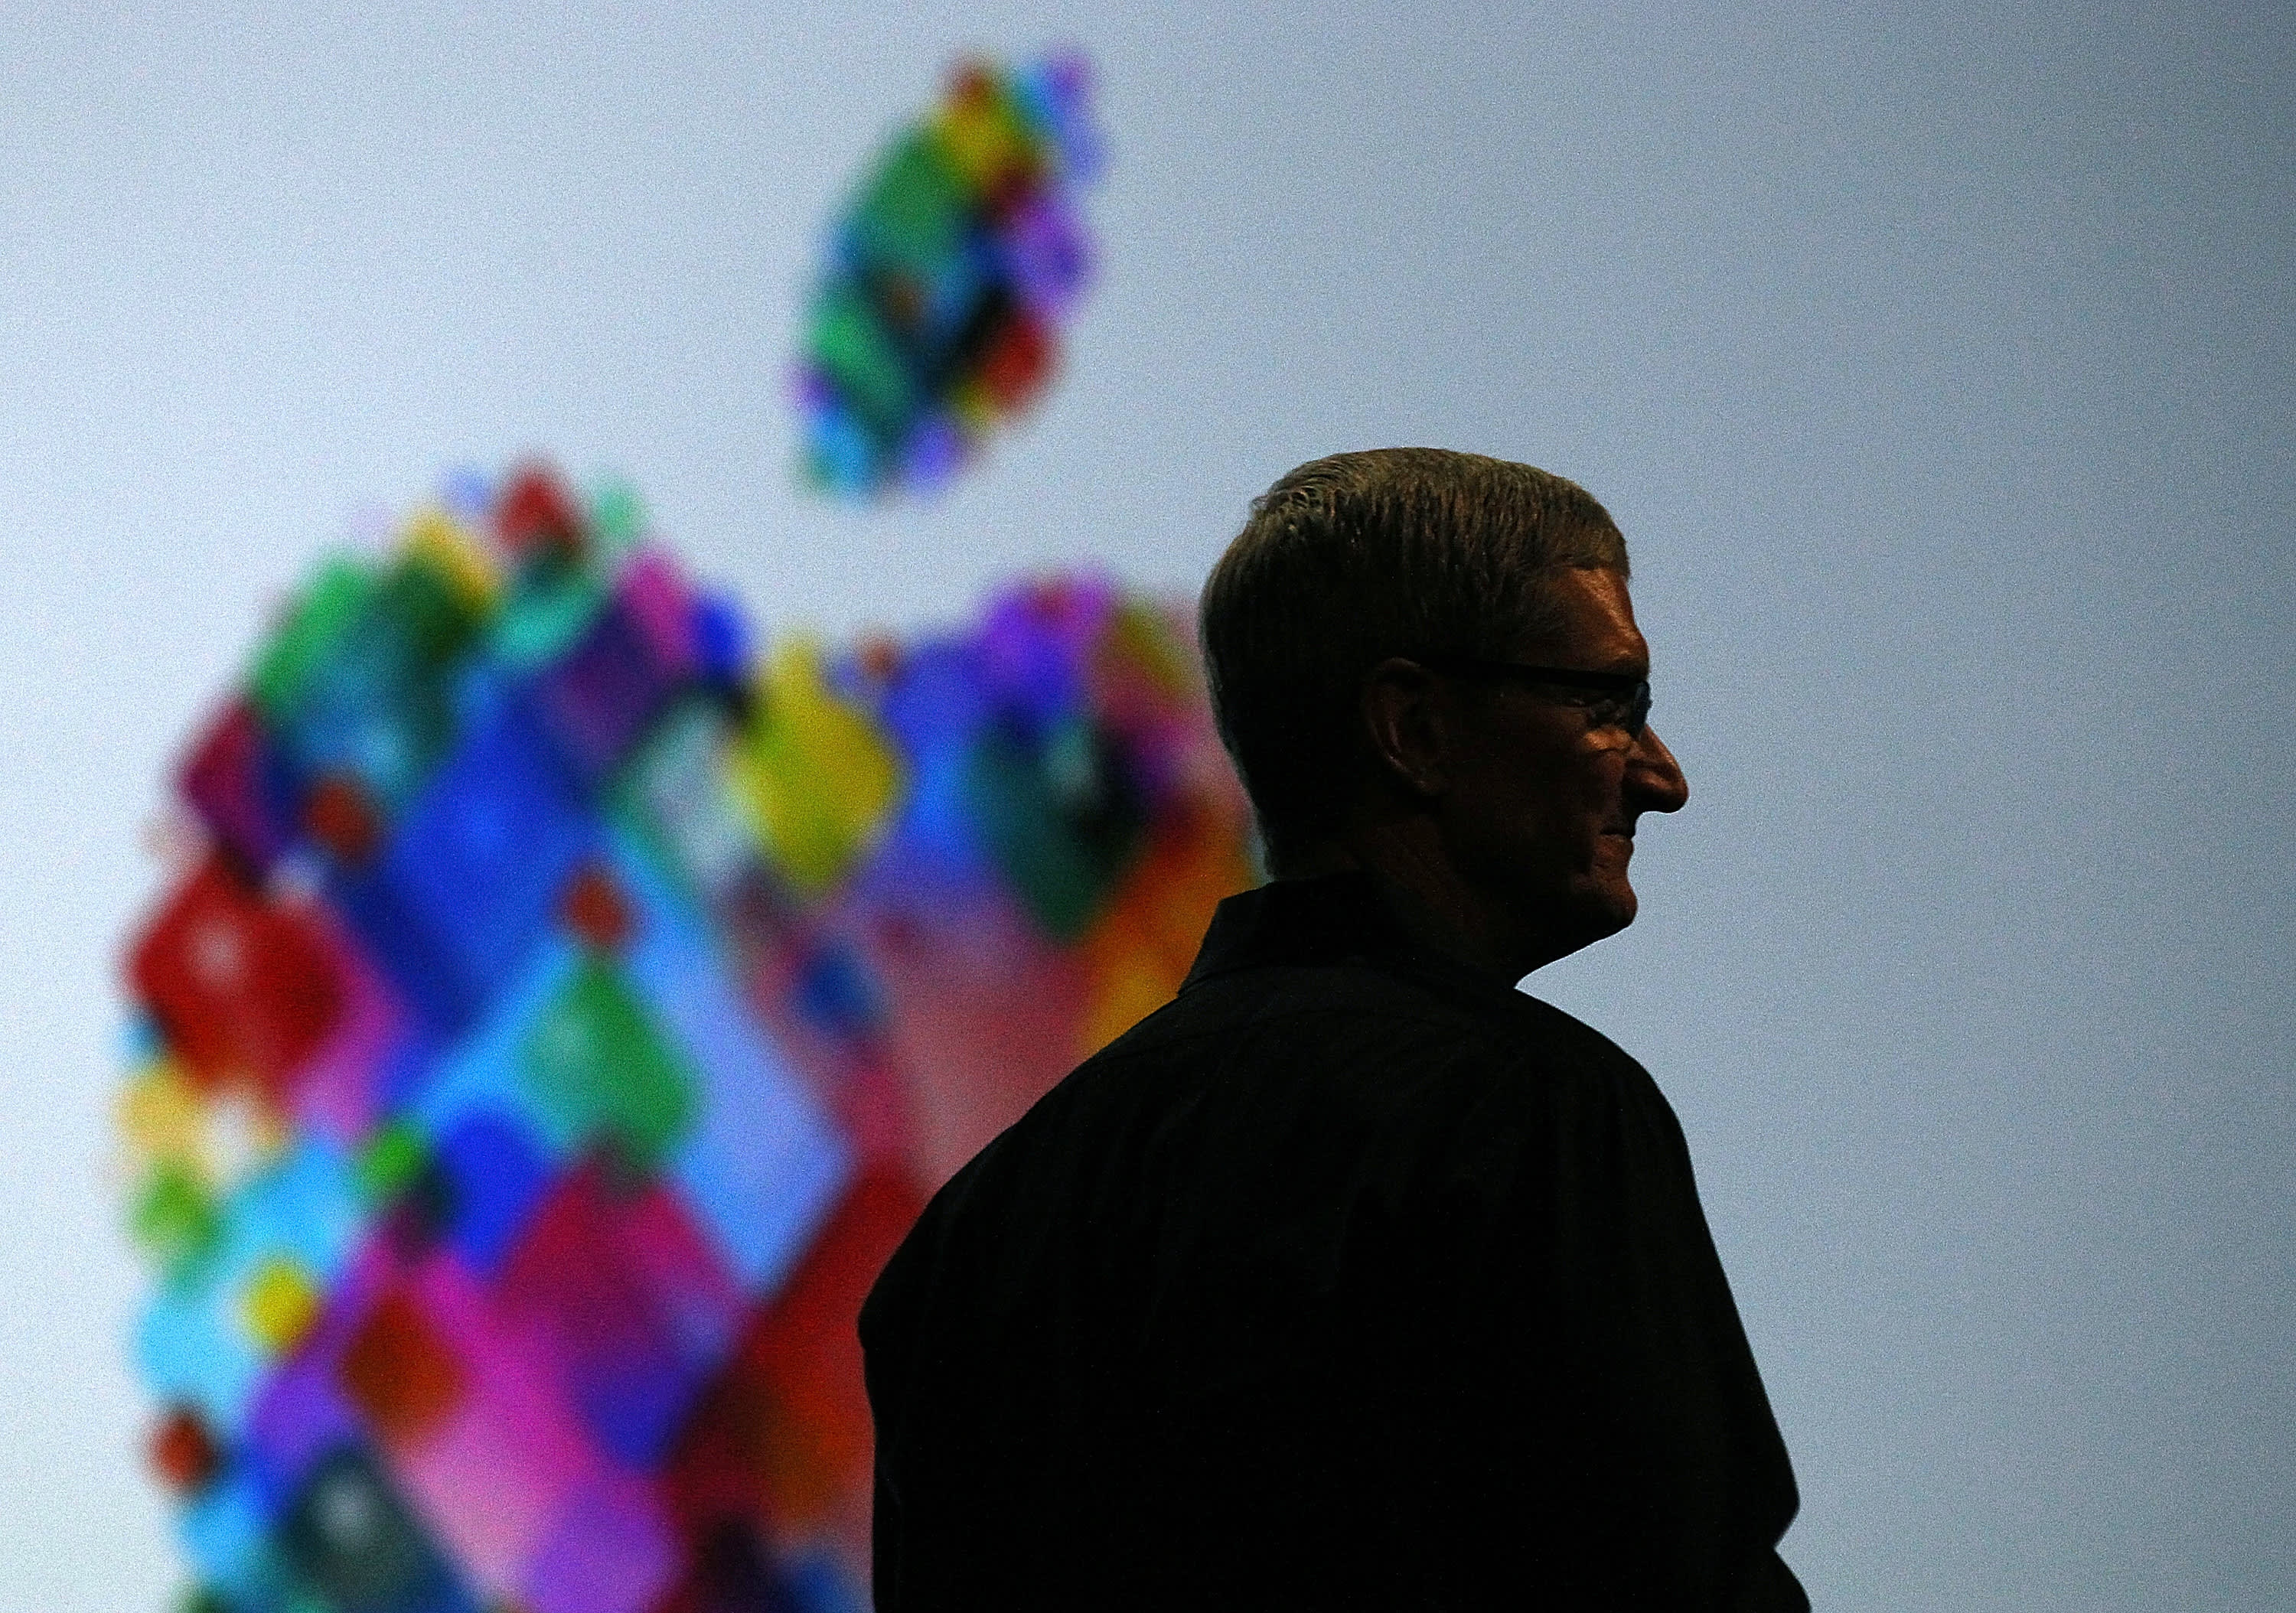 Apple announces event for March 25 where streaming TV and subscription news services are expected